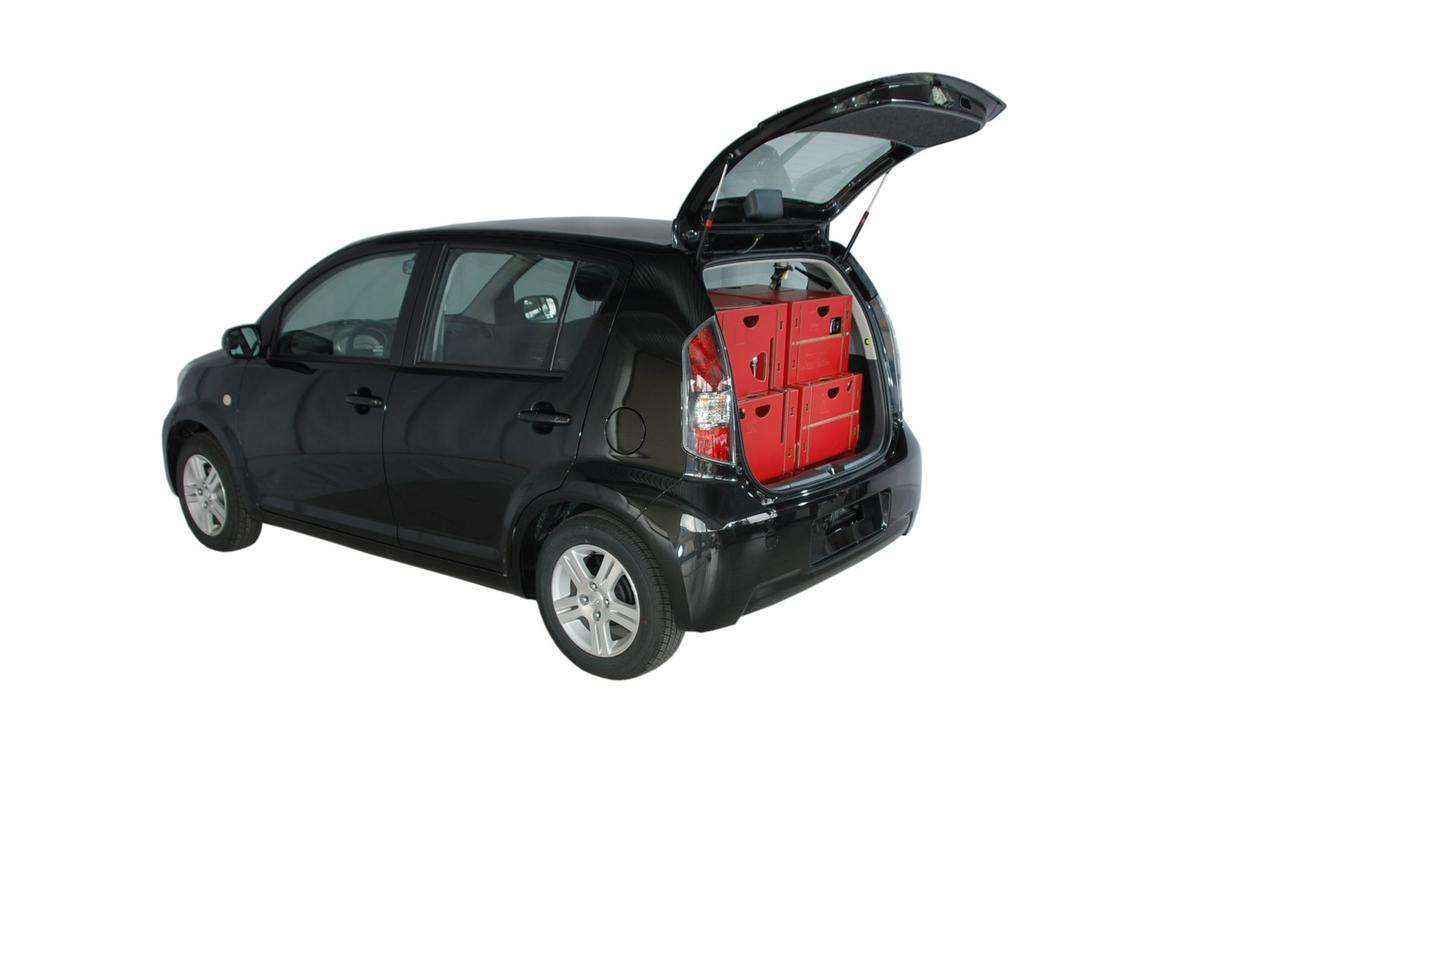 The Swiss Roombox was designed to mount into a car within about 15 minutes